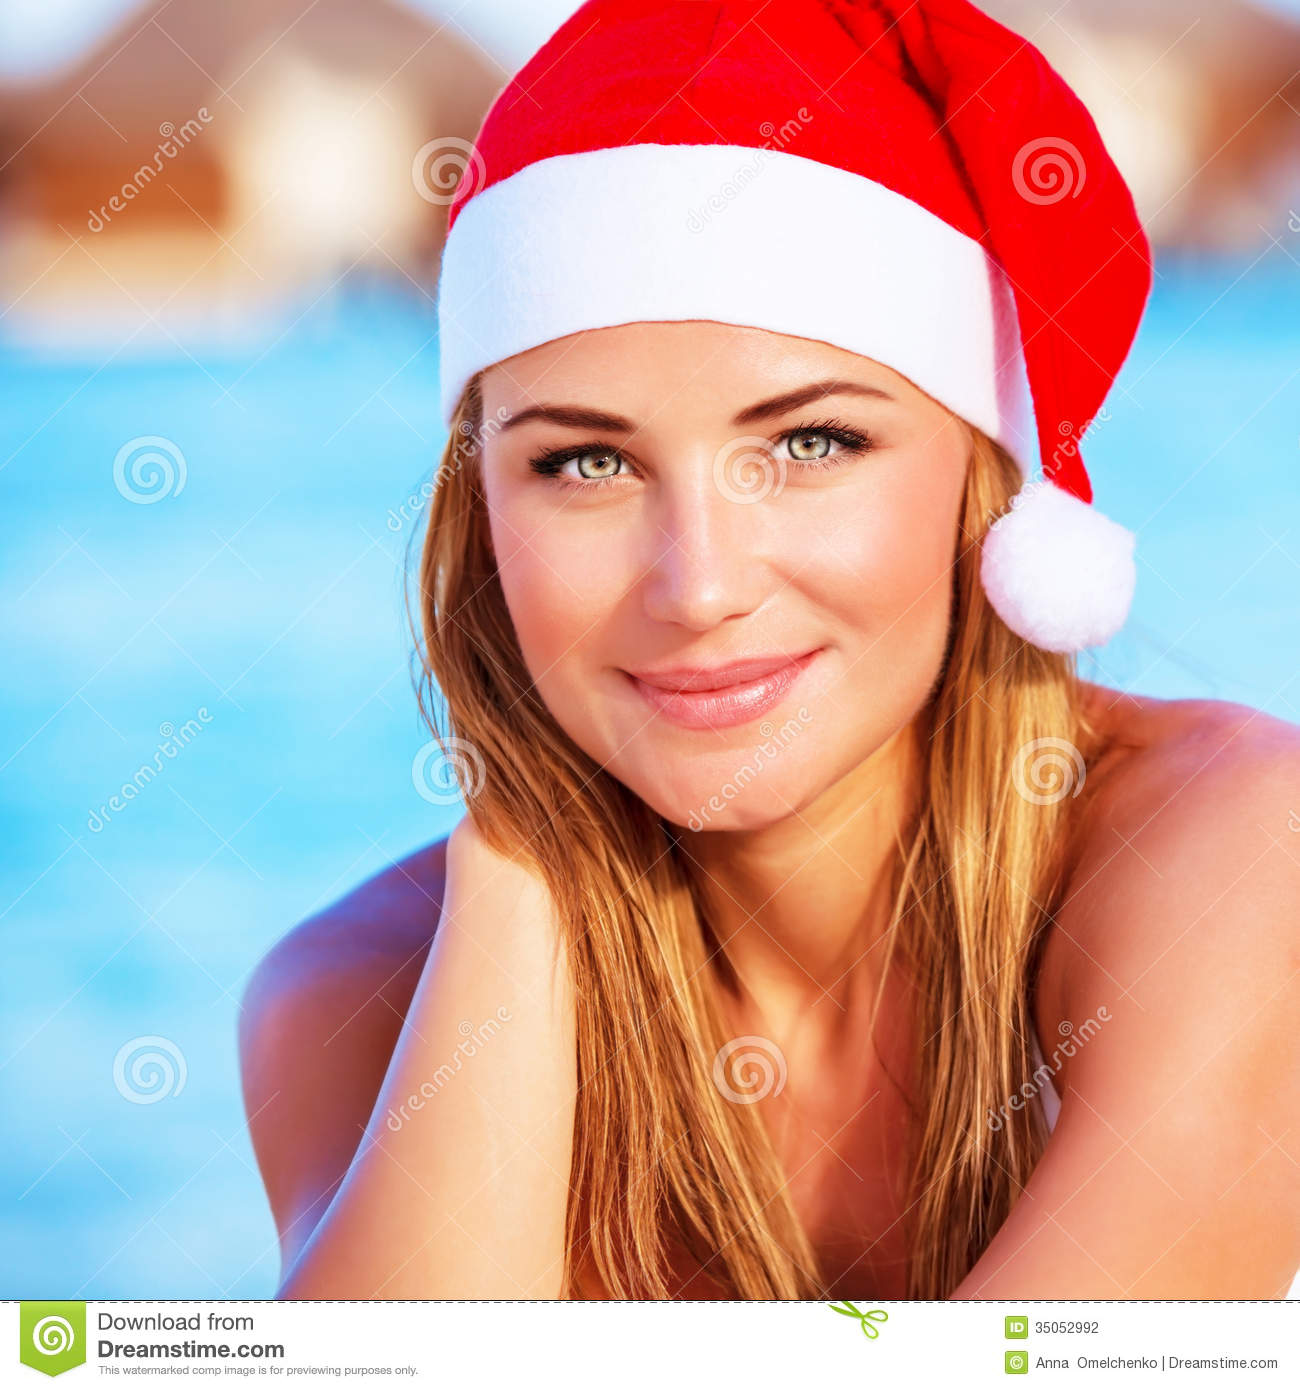 ... island, Christmas party on the beach, travel and vacation concept